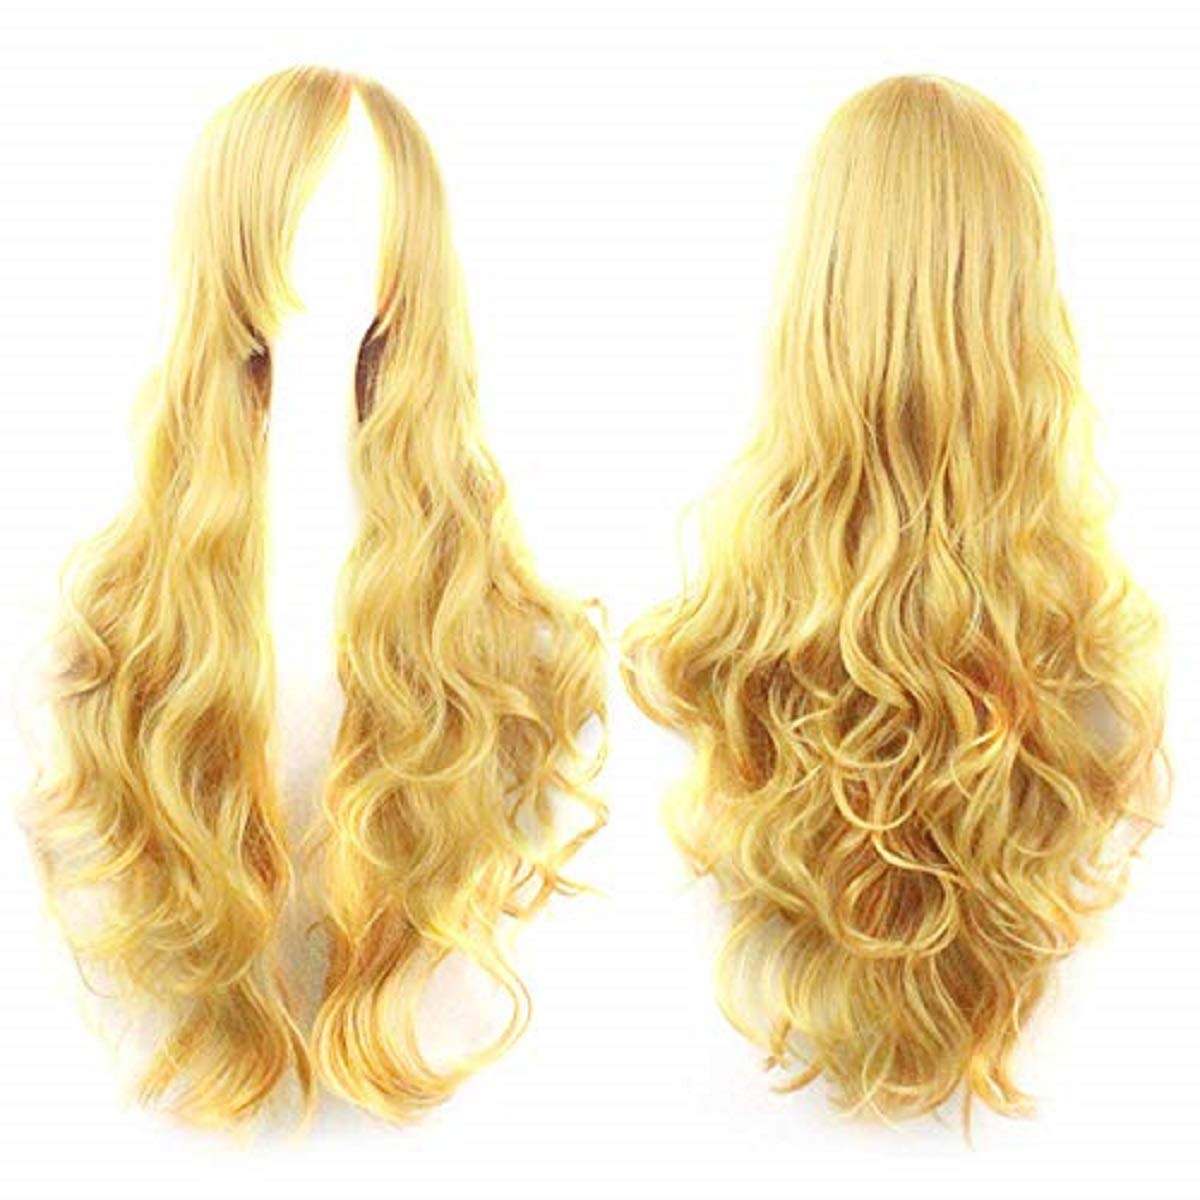 Lace Long Wigs,Cosplay Costume Wigs Women Long Curl Wavy Red Halloween Party Anime Hair,Hair Replacement Wigs,Novelty & More